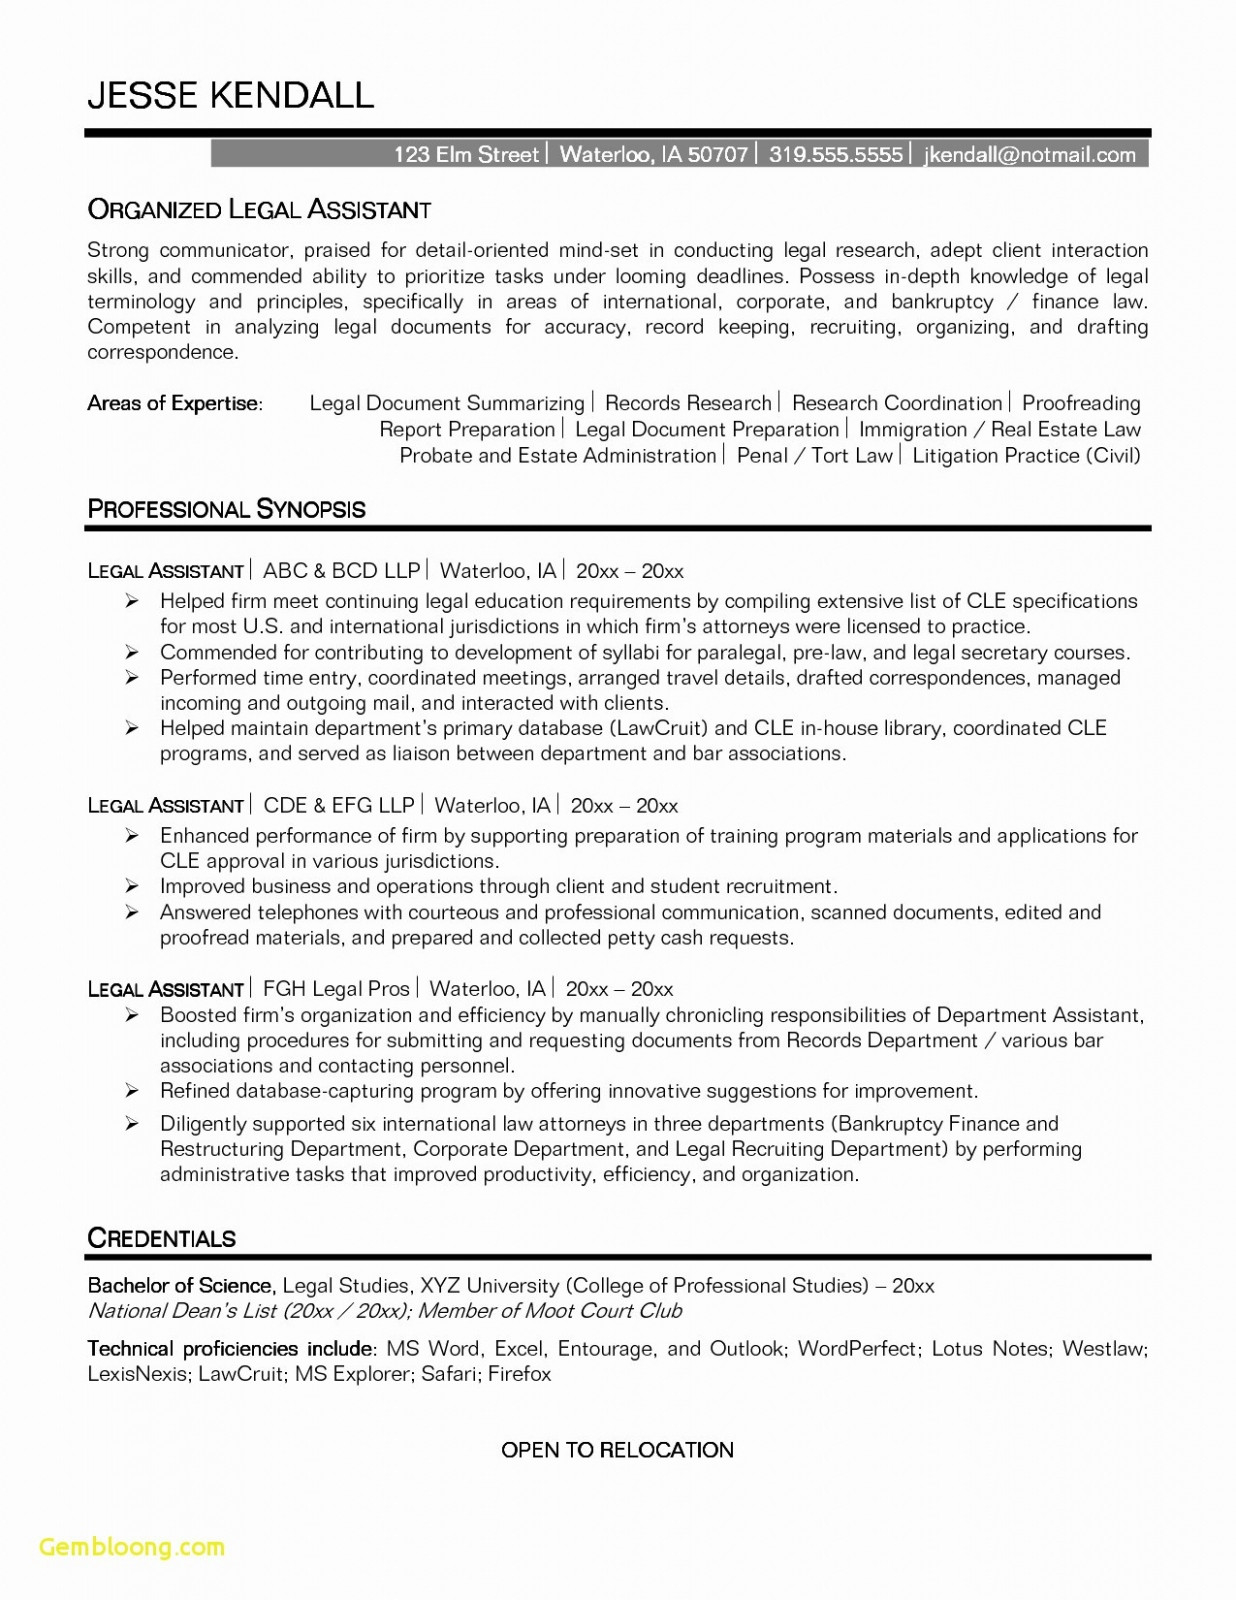 wordperfect resume template example-Professional Executive Assistant Resume Free Downloads Resume Template Executive Assistant Beautiful Ssis Resume 0d 10-n